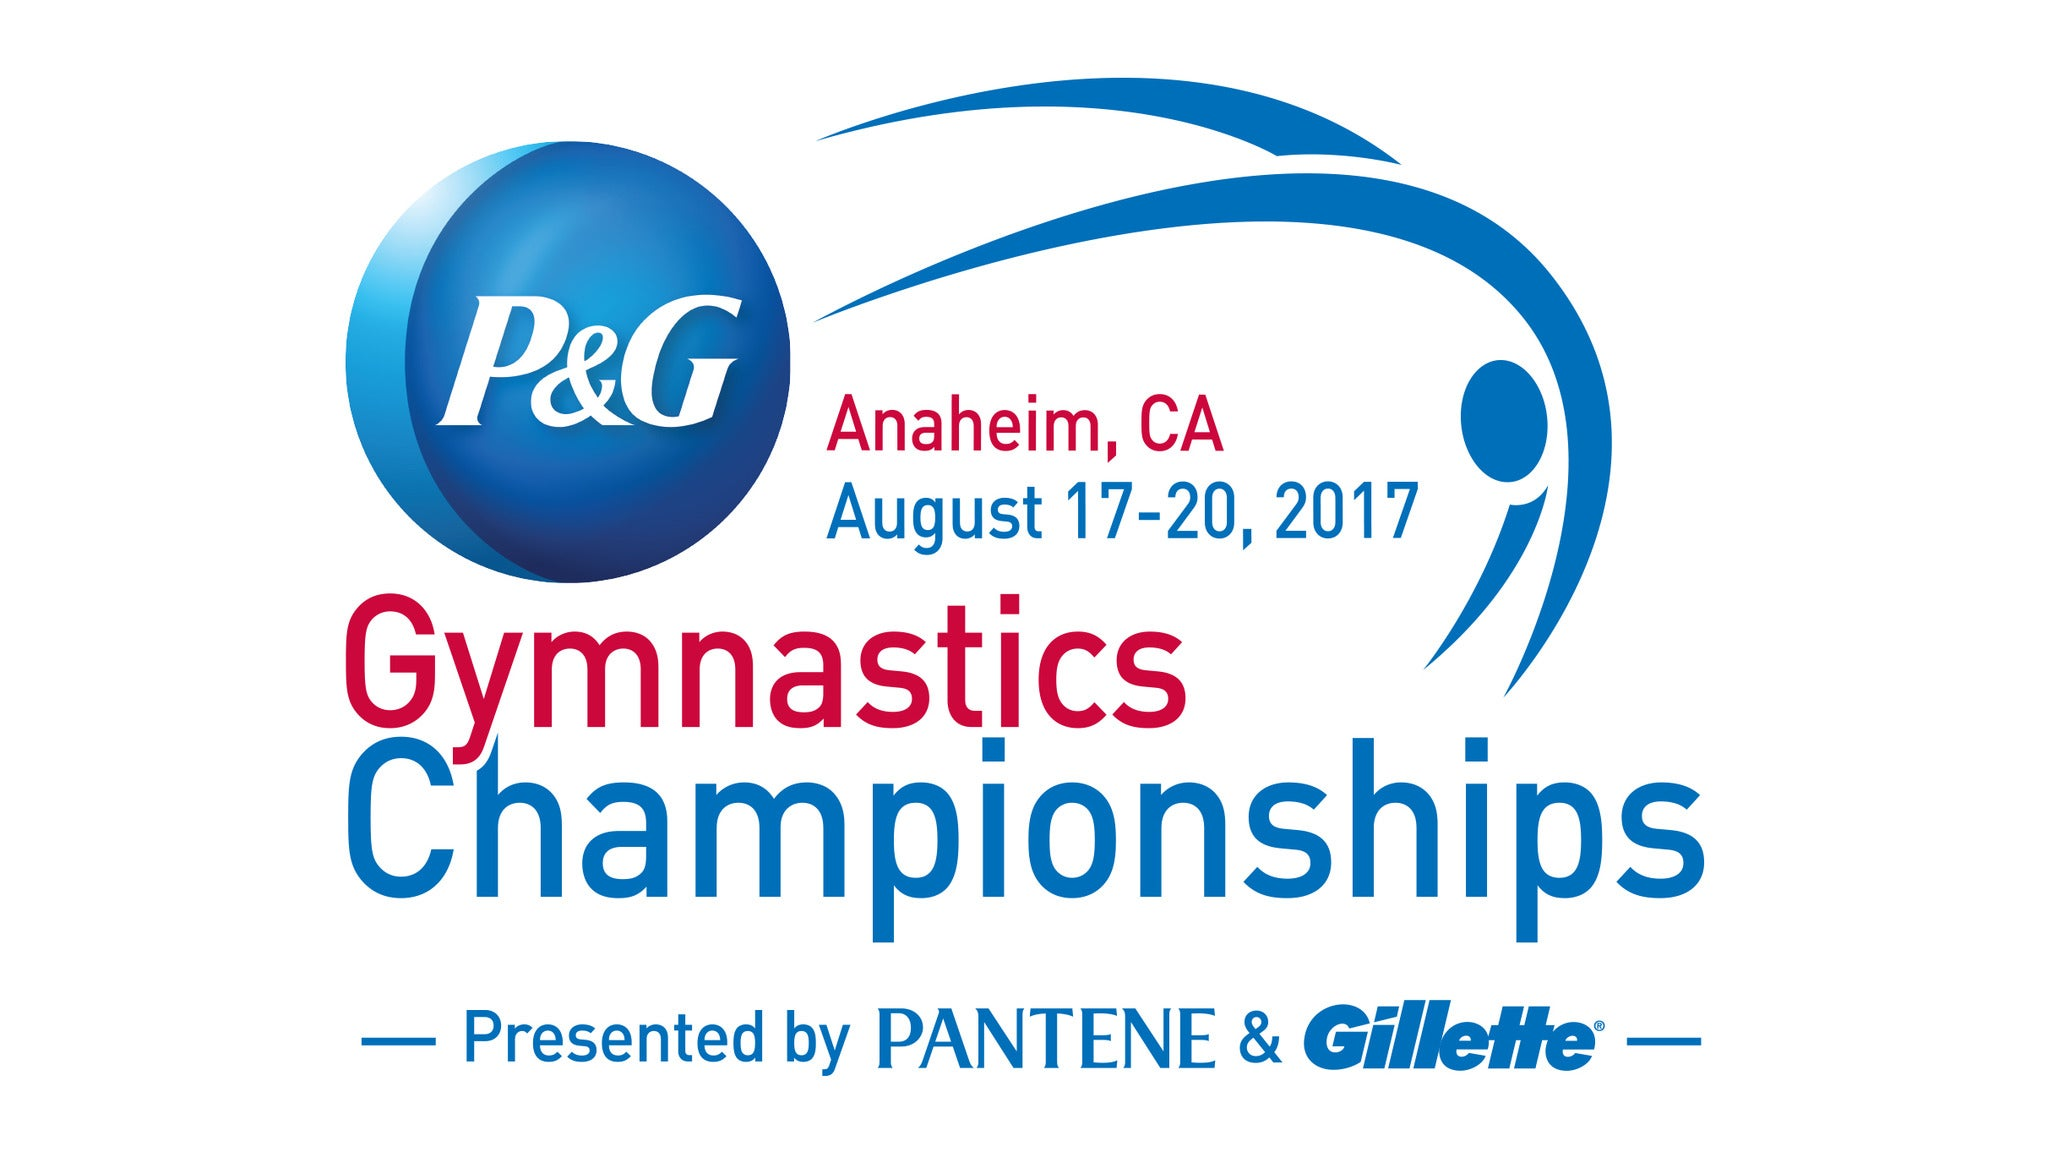 P&G Gymnastics Championships Junior Women's Finals